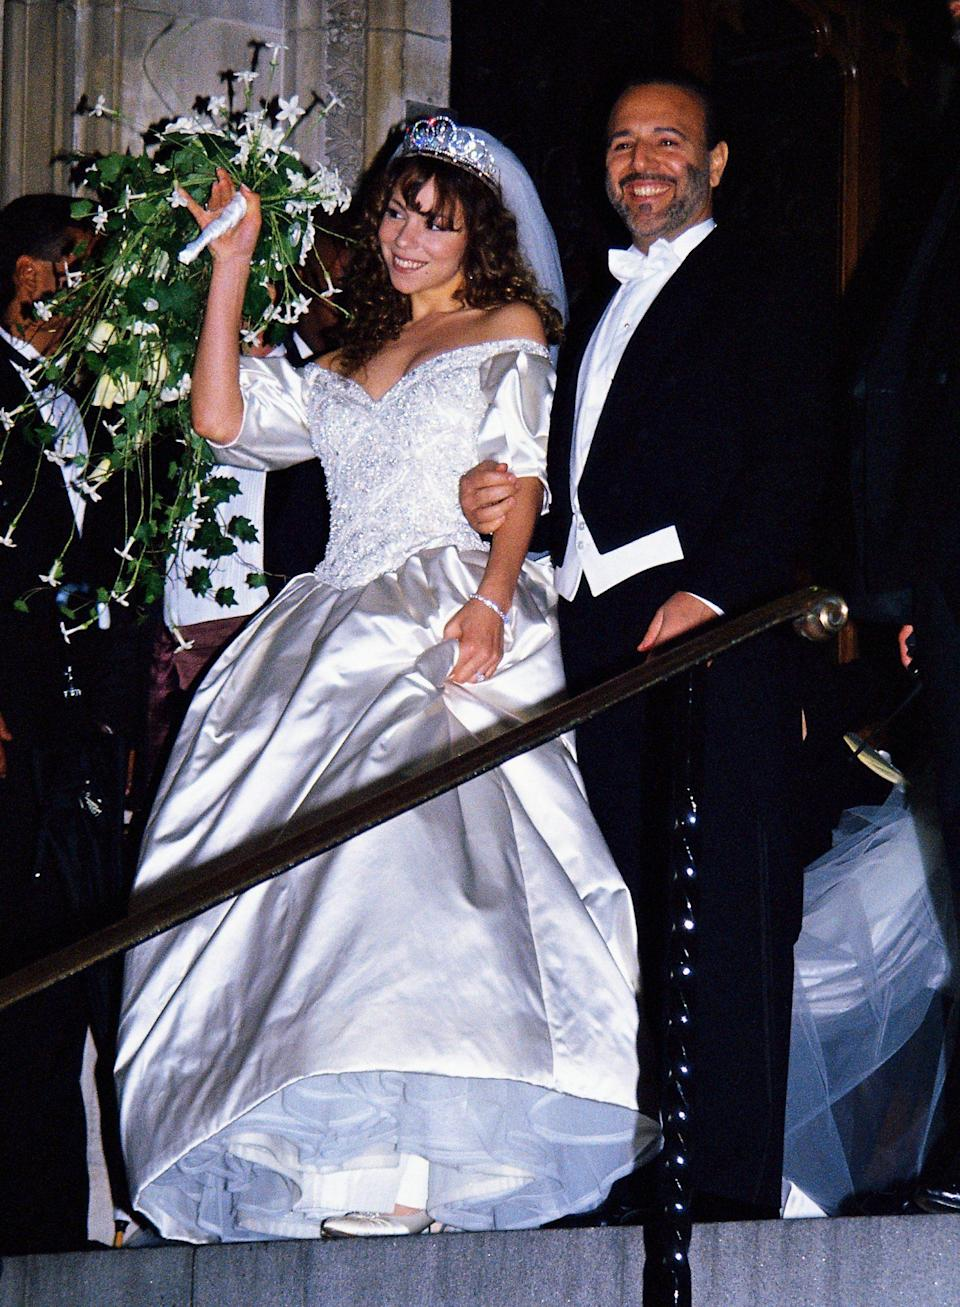 """<p>The over-the-top princess gown Carey wore for her 1993 wedding to Tommy Mottola is one of the most iconic celebrity wedding dresses of all time. But the marriage was an unhappy one, and <a href=""""https://www.youtube.com/watch?v=mrwbUvjIf4c"""" rel=""""nofollow noopener"""" target=""""_blank"""" data-ylk=""""slk:Carey eventually confessed on"""" class=""""link rapid-noclick-resp"""">Carey eventually confessed on </a><em><a href=""""https://www.youtube.com/watch?v=mrwbUvjIf4c"""" rel=""""nofollow noopener"""" target=""""_blank"""" data-ylk=""""slk:Watch What Happens Live"""" class=""""link rapid-noclick-resp"""">Watch What Happens Live</a> </em>that she considered burning it in her music video for """"We Belong Together."""" (<a href=""""https://www.youtube.com/watch?v=0habxsuXW4g"""" rel=""""nofollow noopener"""" target=""""_blank"""" data-ylk=""""slk:She ended up rewearing it instead, to run away with Wentworth Miller"""" class=""""link rapid-noclick-resp"""">She ended up rewearing it instead, to run away with Wentworth Miller</a>!)</p>"""